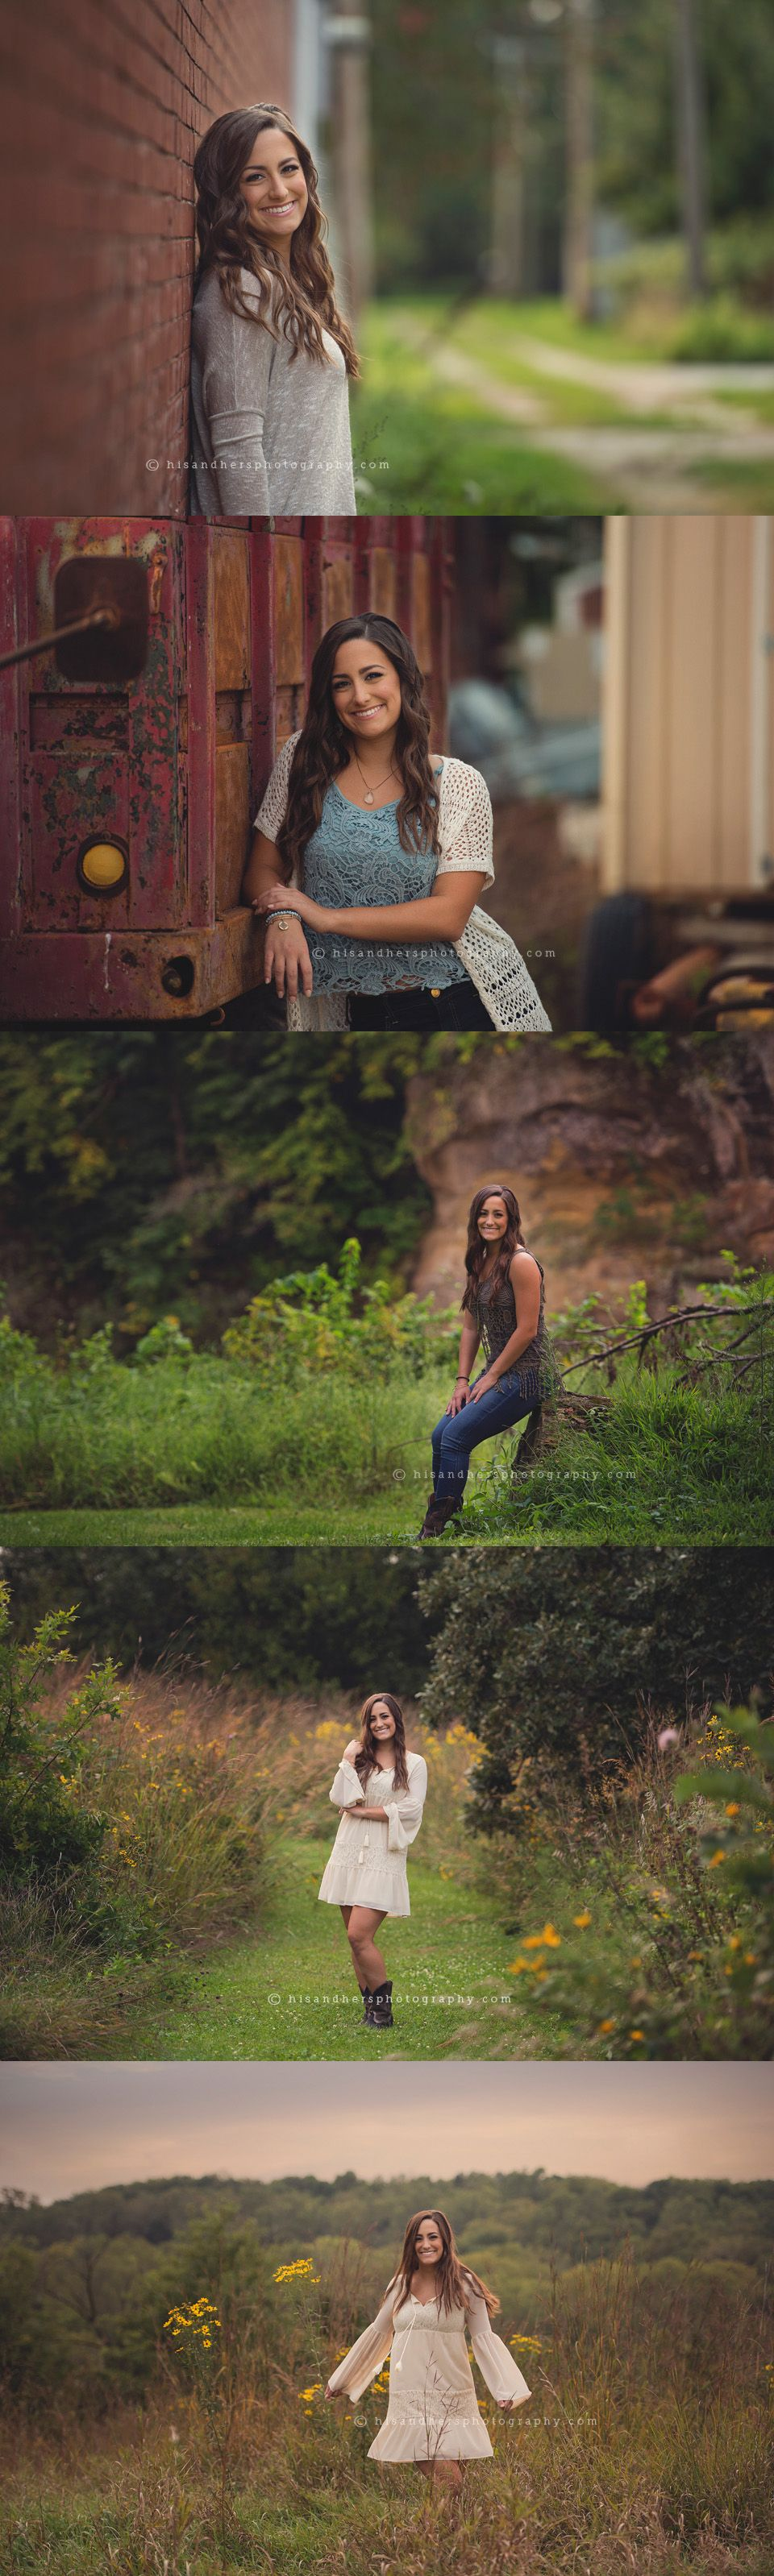 Senior | Madelyn, class of 2016